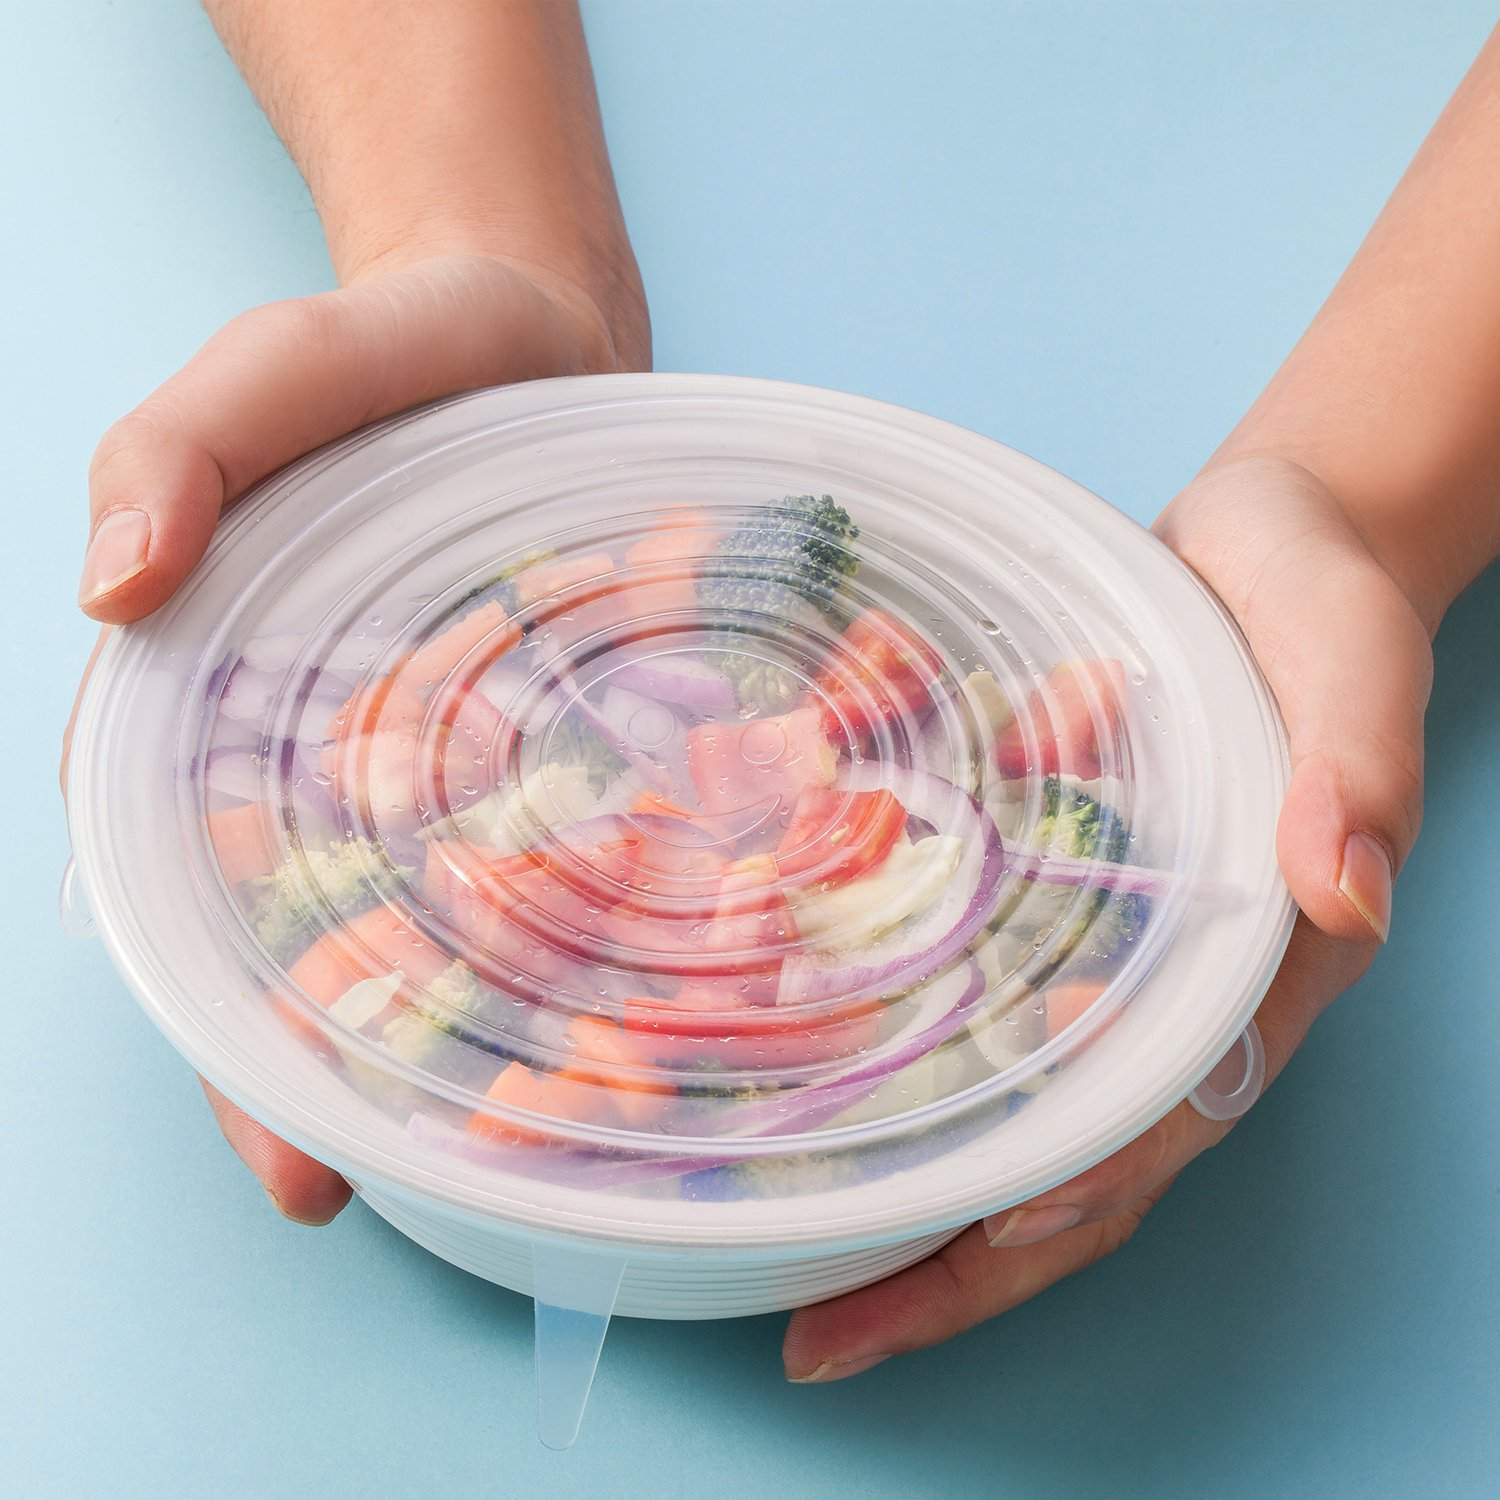 Silicone Stretch Lids, 6-Pack Various Sizes Cover for Bowl by i-Kawachi (Image #2)